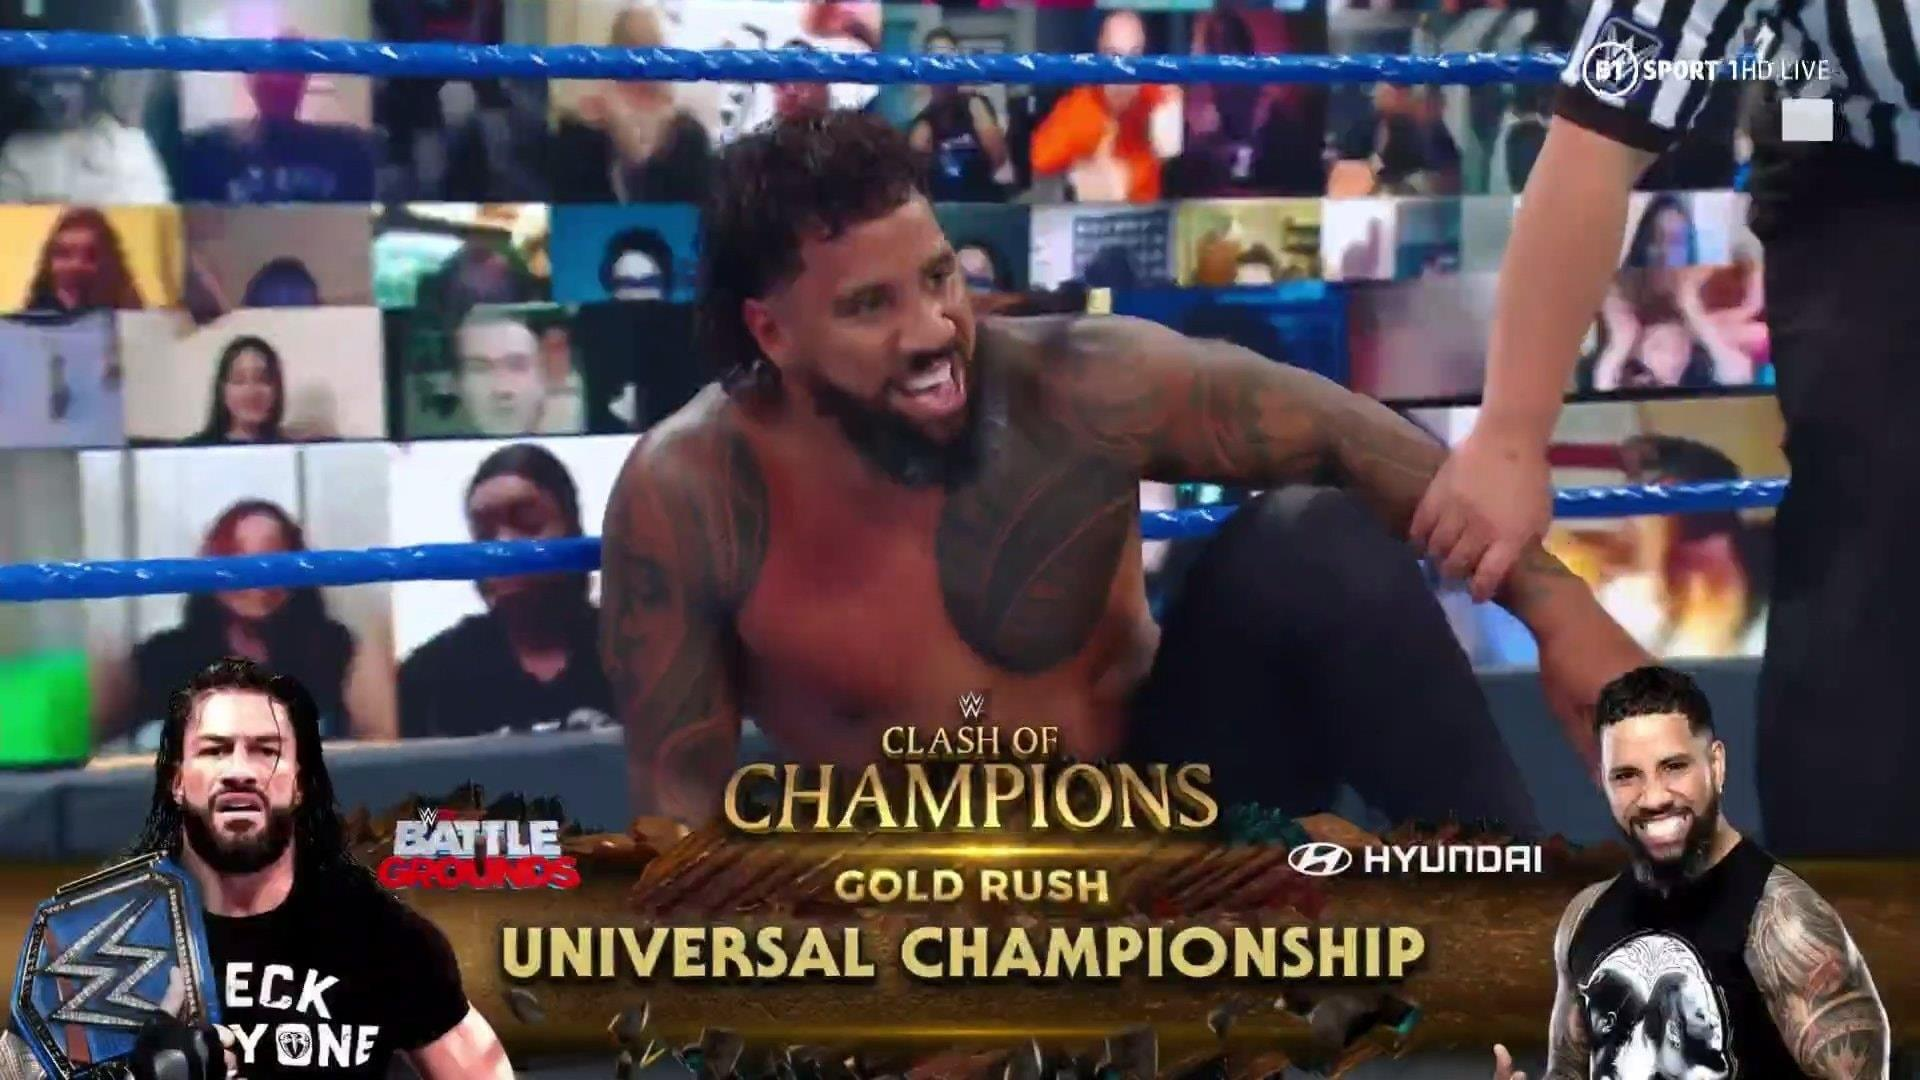 Jey Uso will face Roman Reigns for the Universal Championship at WWE Clash Of Champions 2020